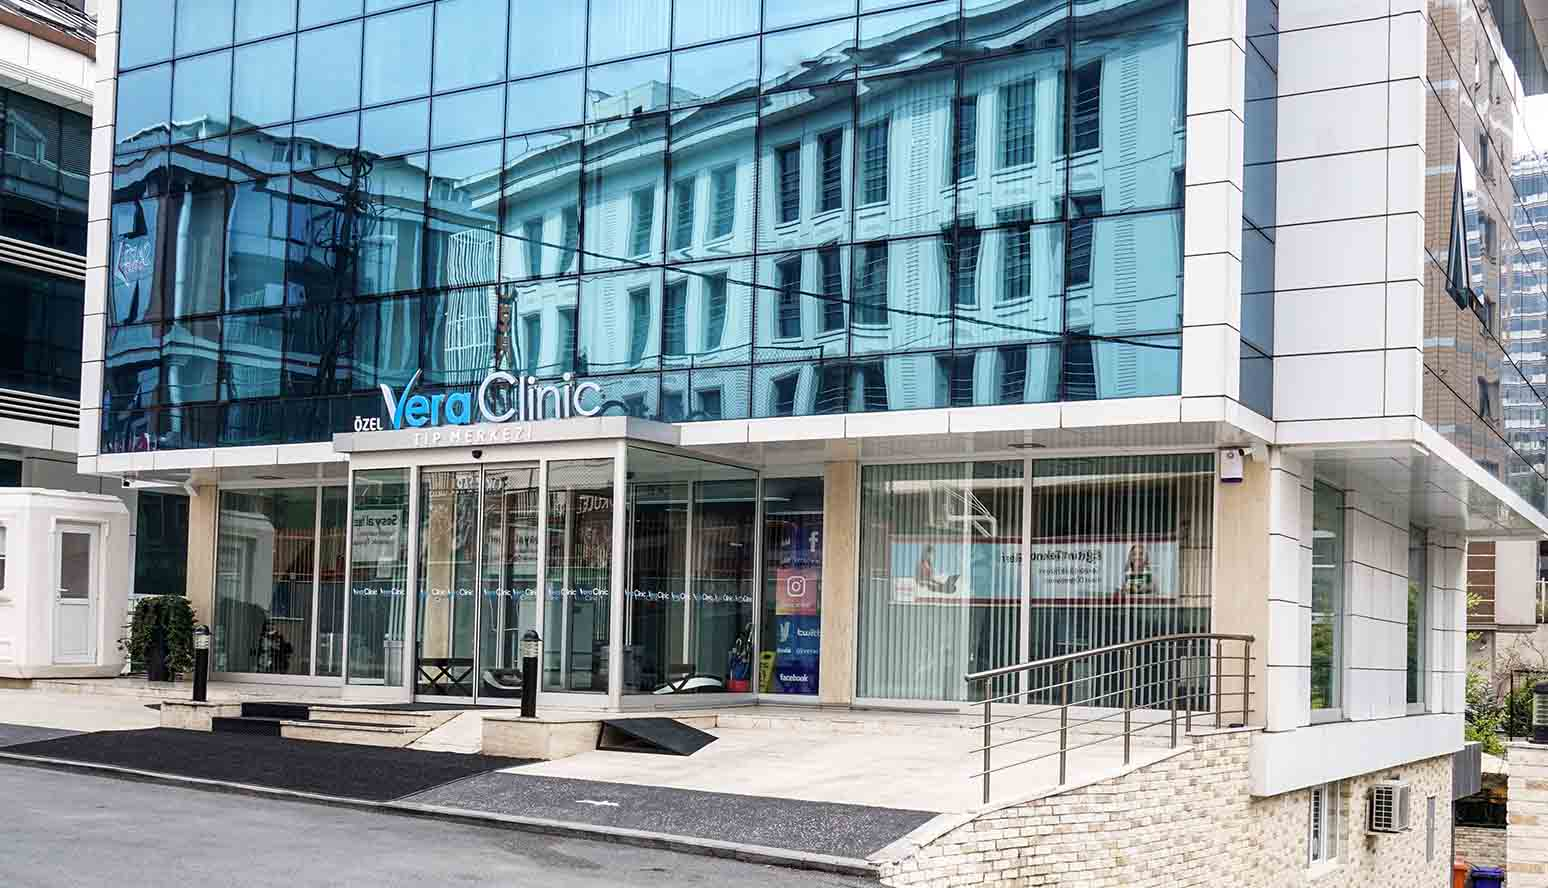 All about the new Vera Clinic hospital building